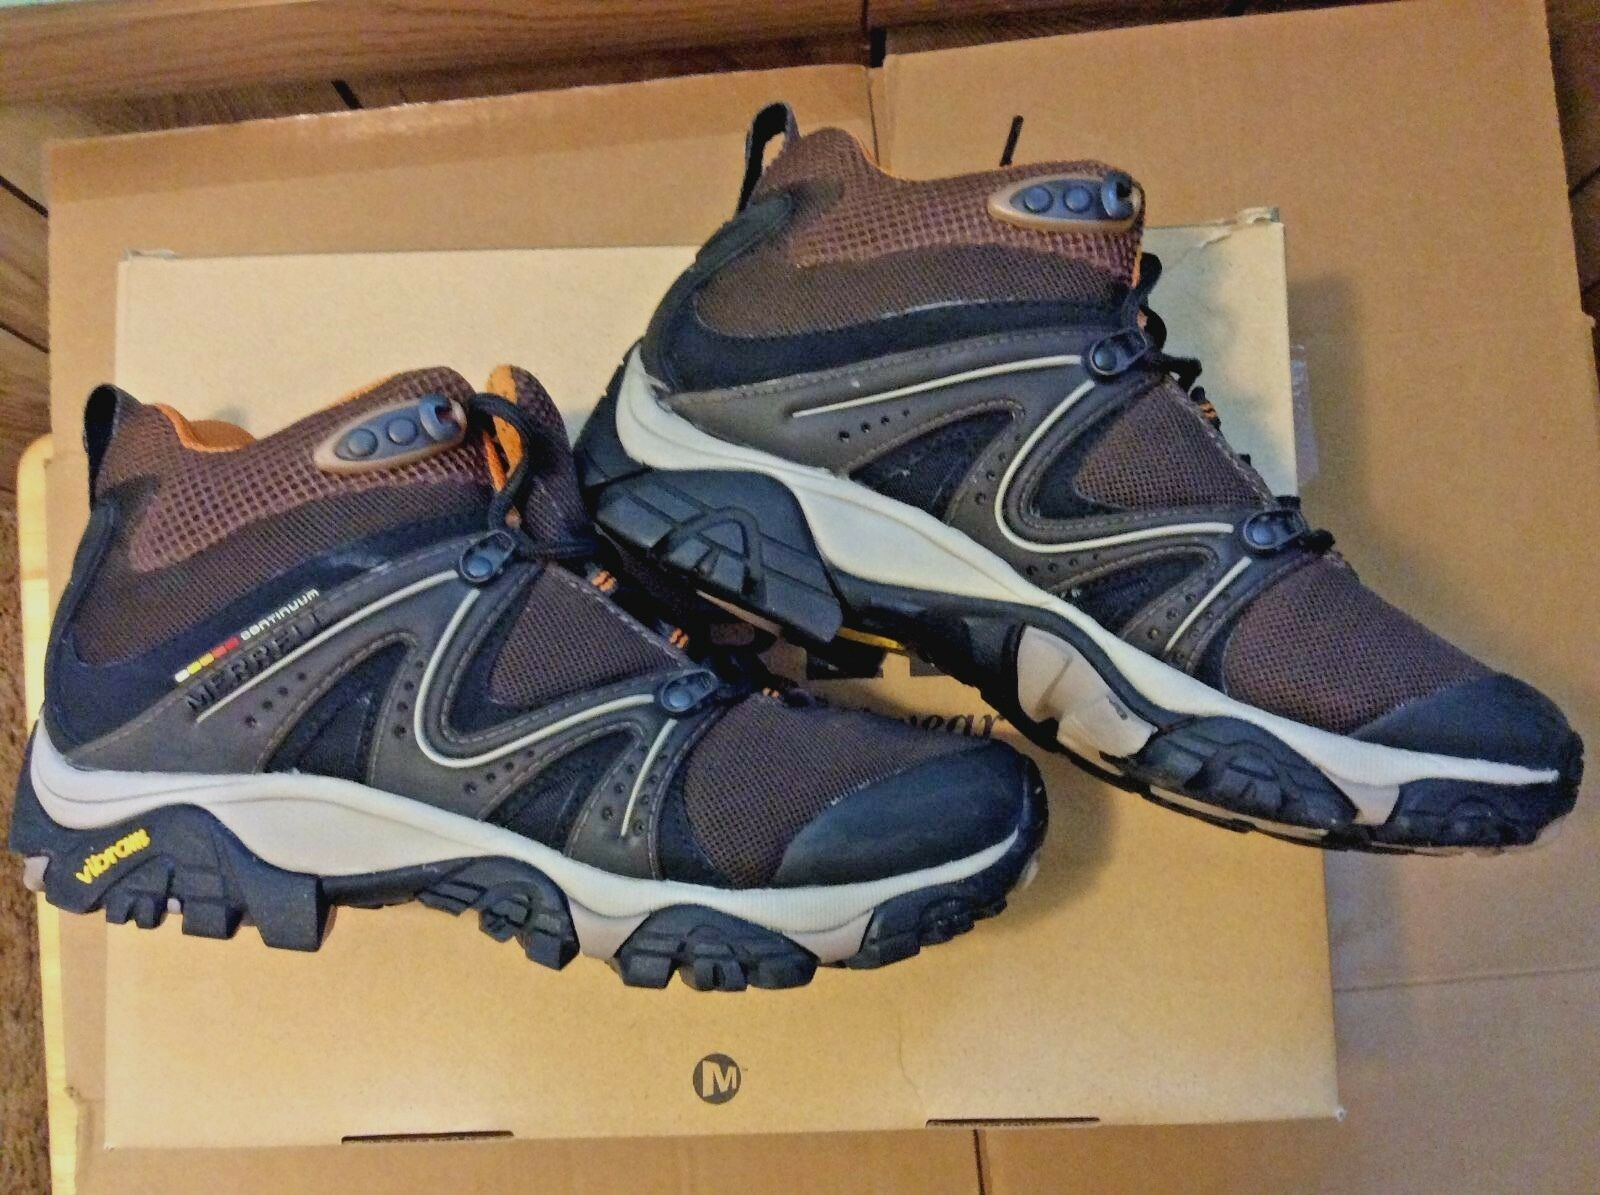 MERRELL REACTOR VENTILATOR MID HIKING Stiefel schuhe COFFEE damen Größe 8.5 NEW